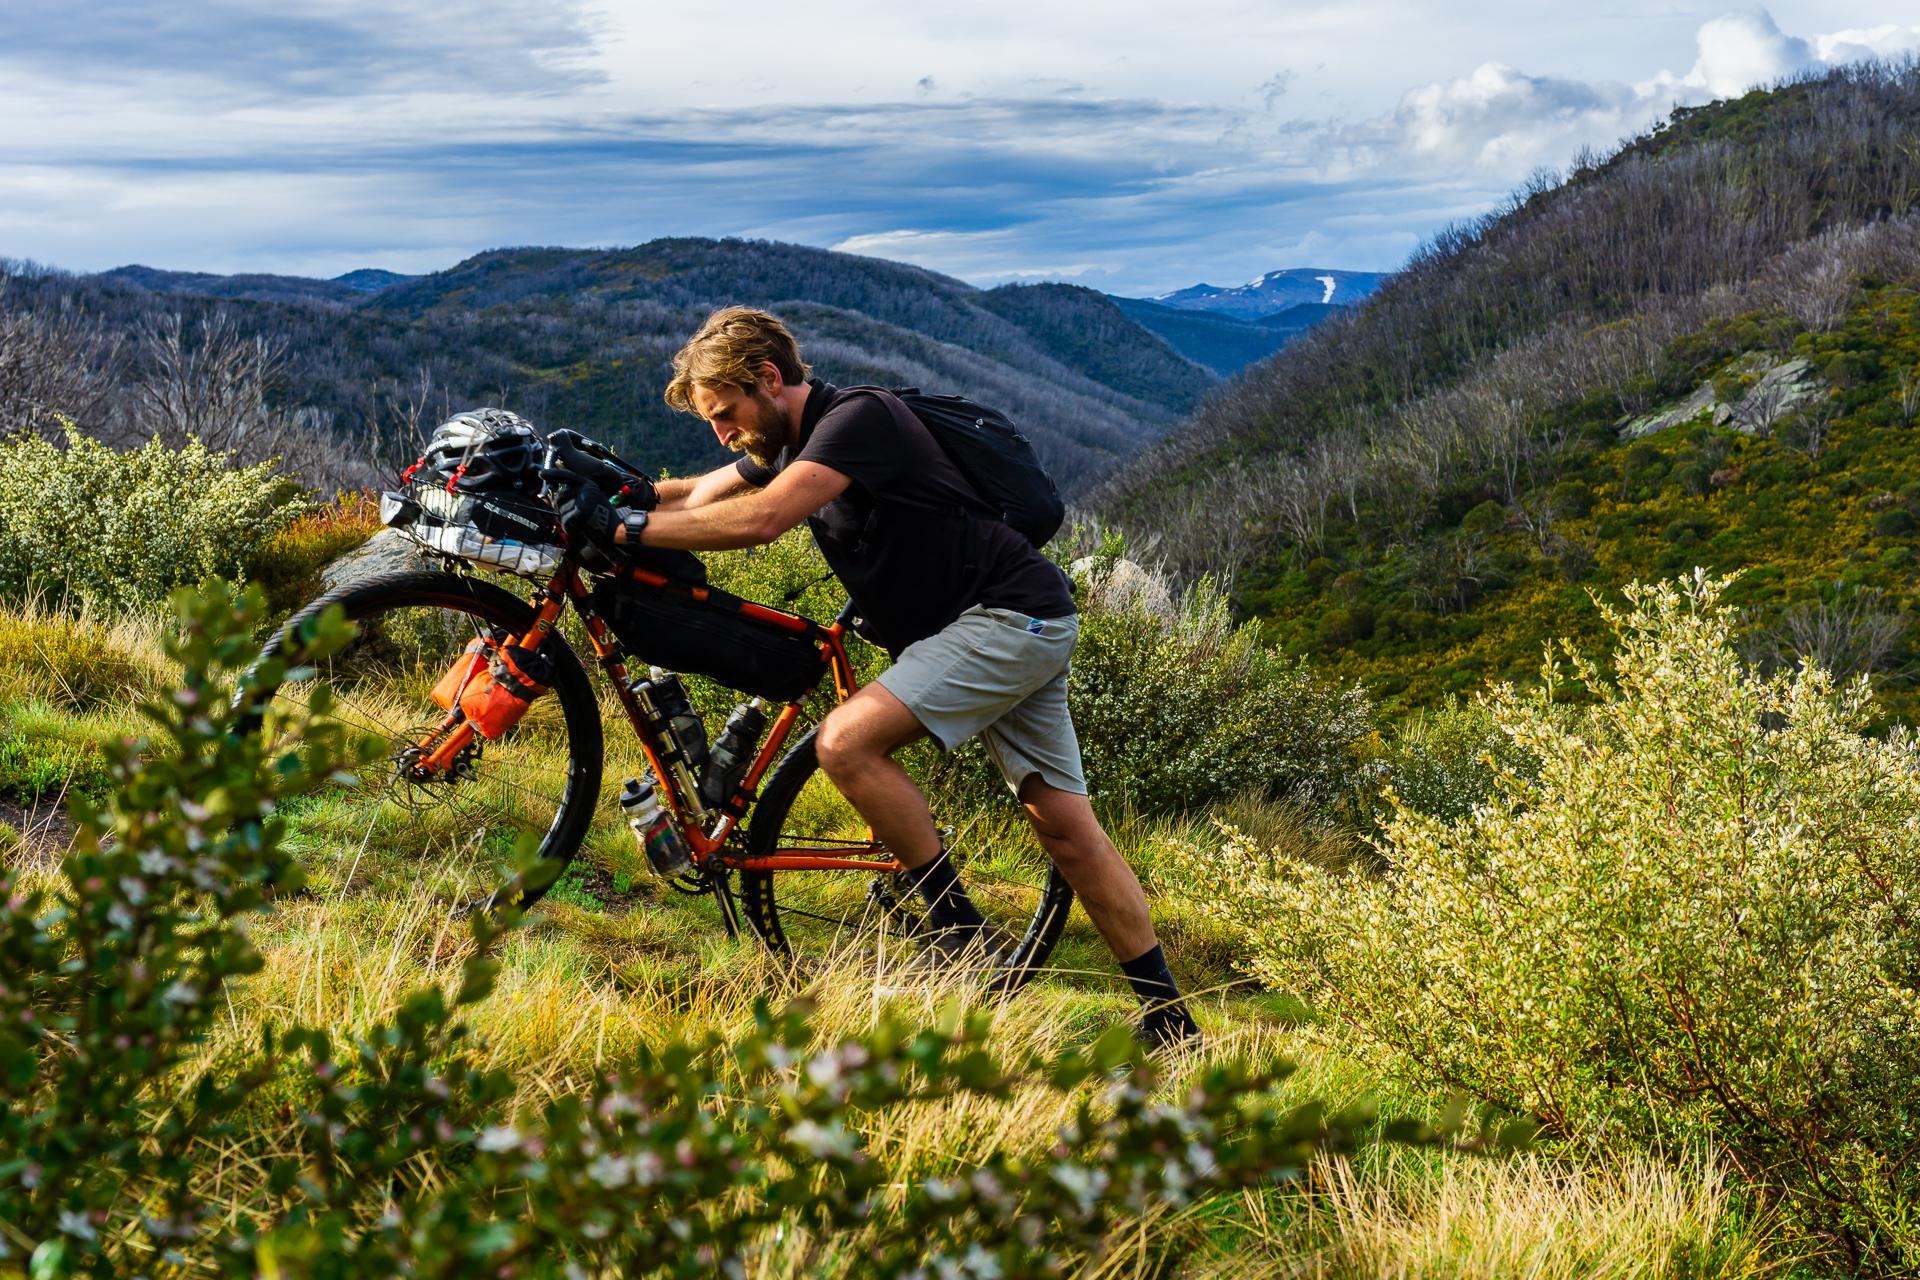 Hike a bike photo from @endless_cycle taken in the Jagungal Wilderness during the Hunt 1000